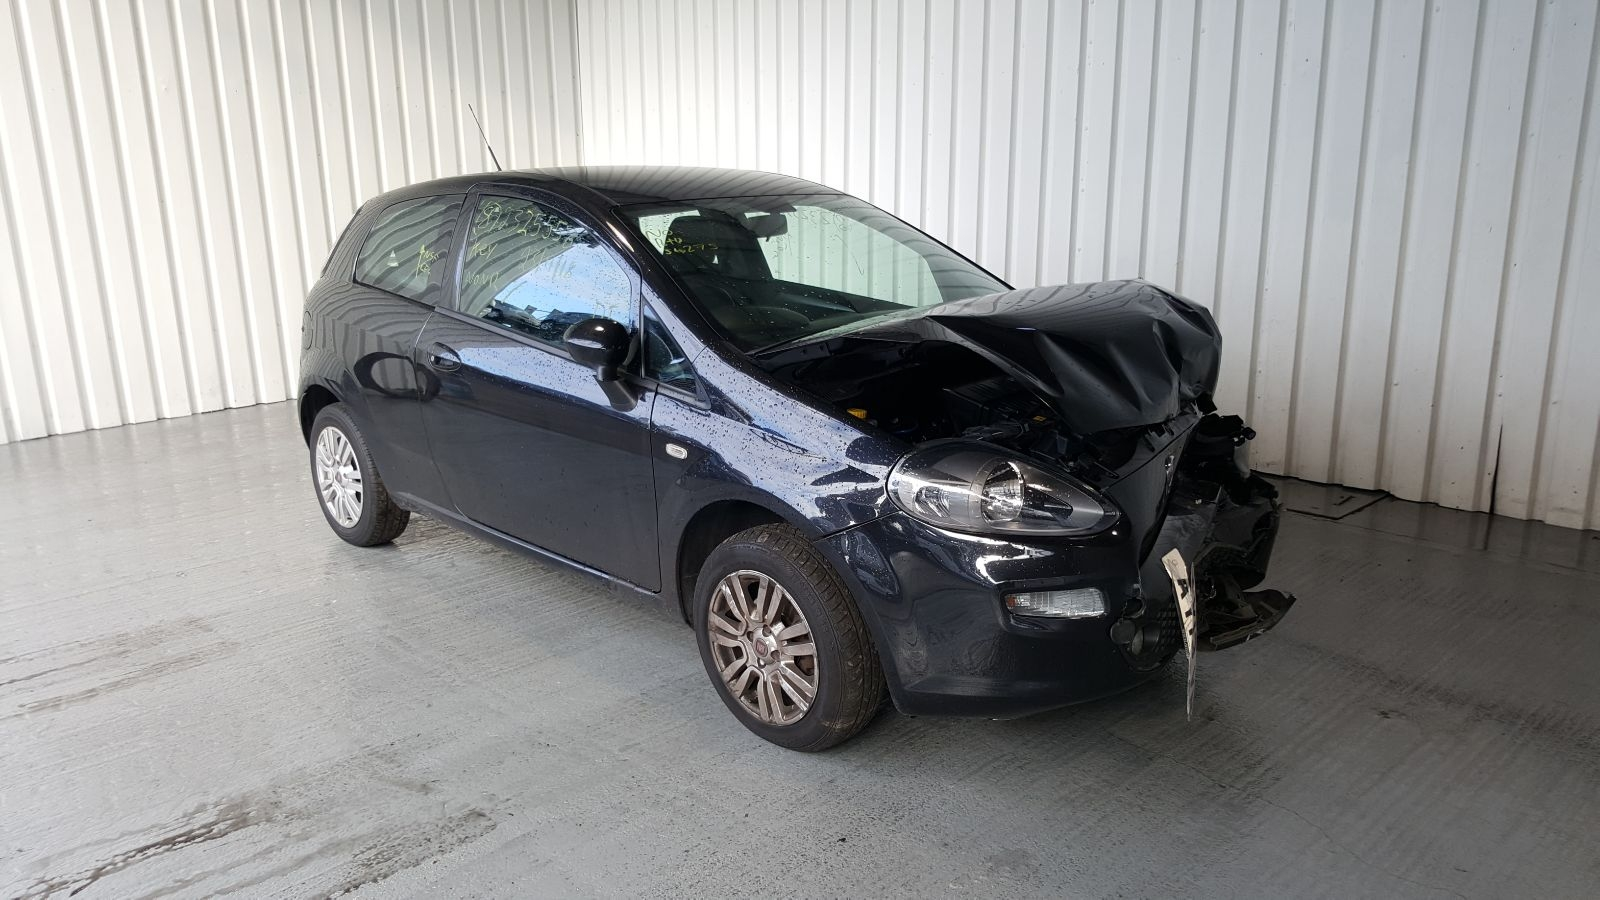 Image for a 2013 Fiat Punto 1.2 Petrol 169A4000 Engine